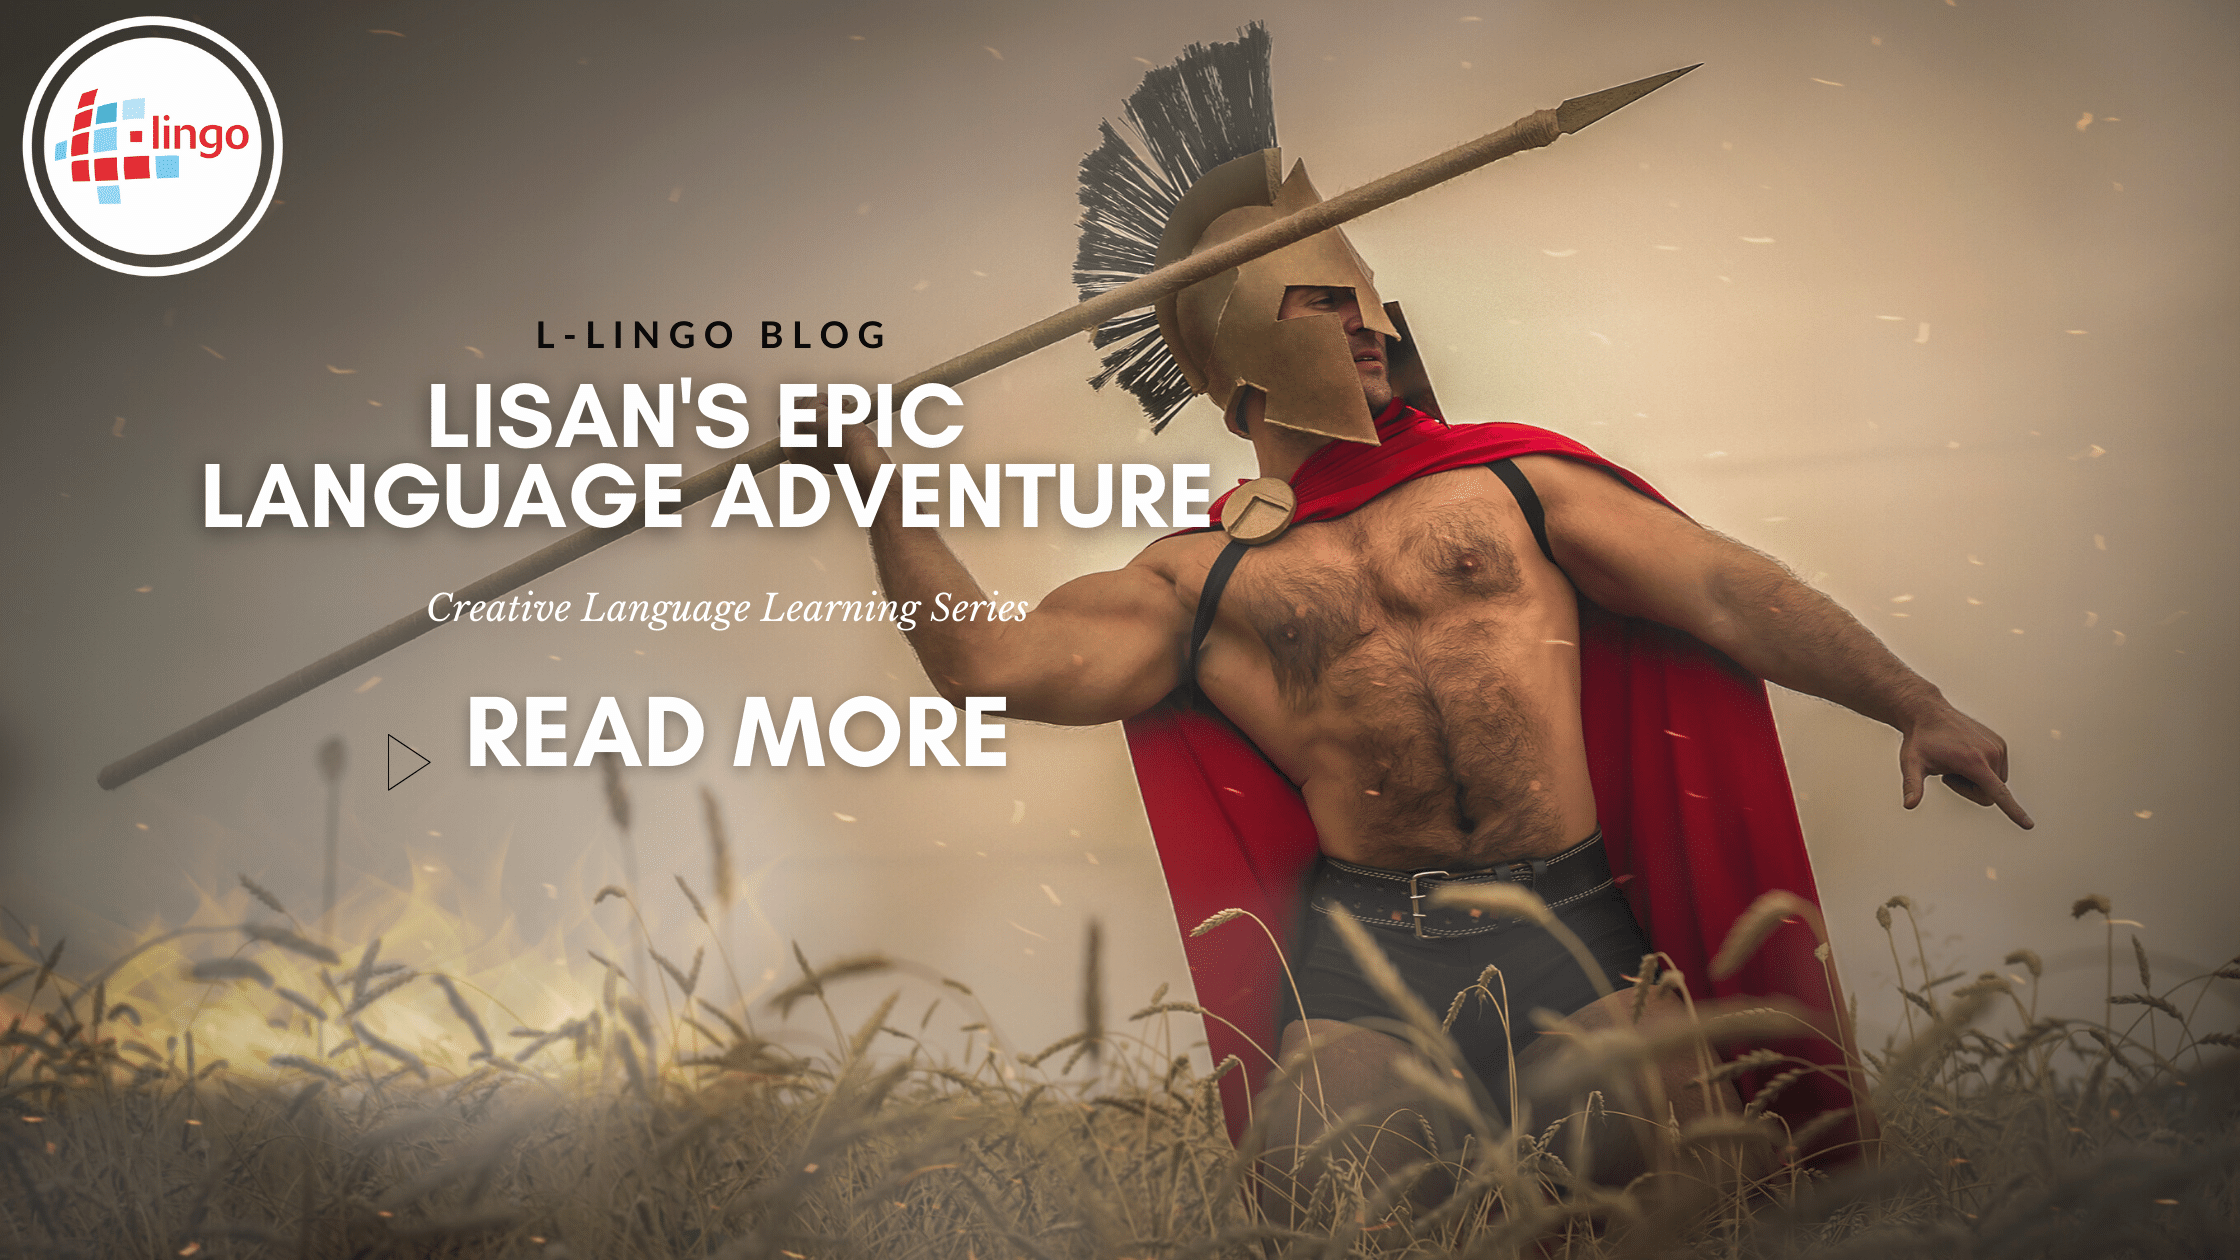 LISAN'S EPIC LANGUAGE ADVENTURE